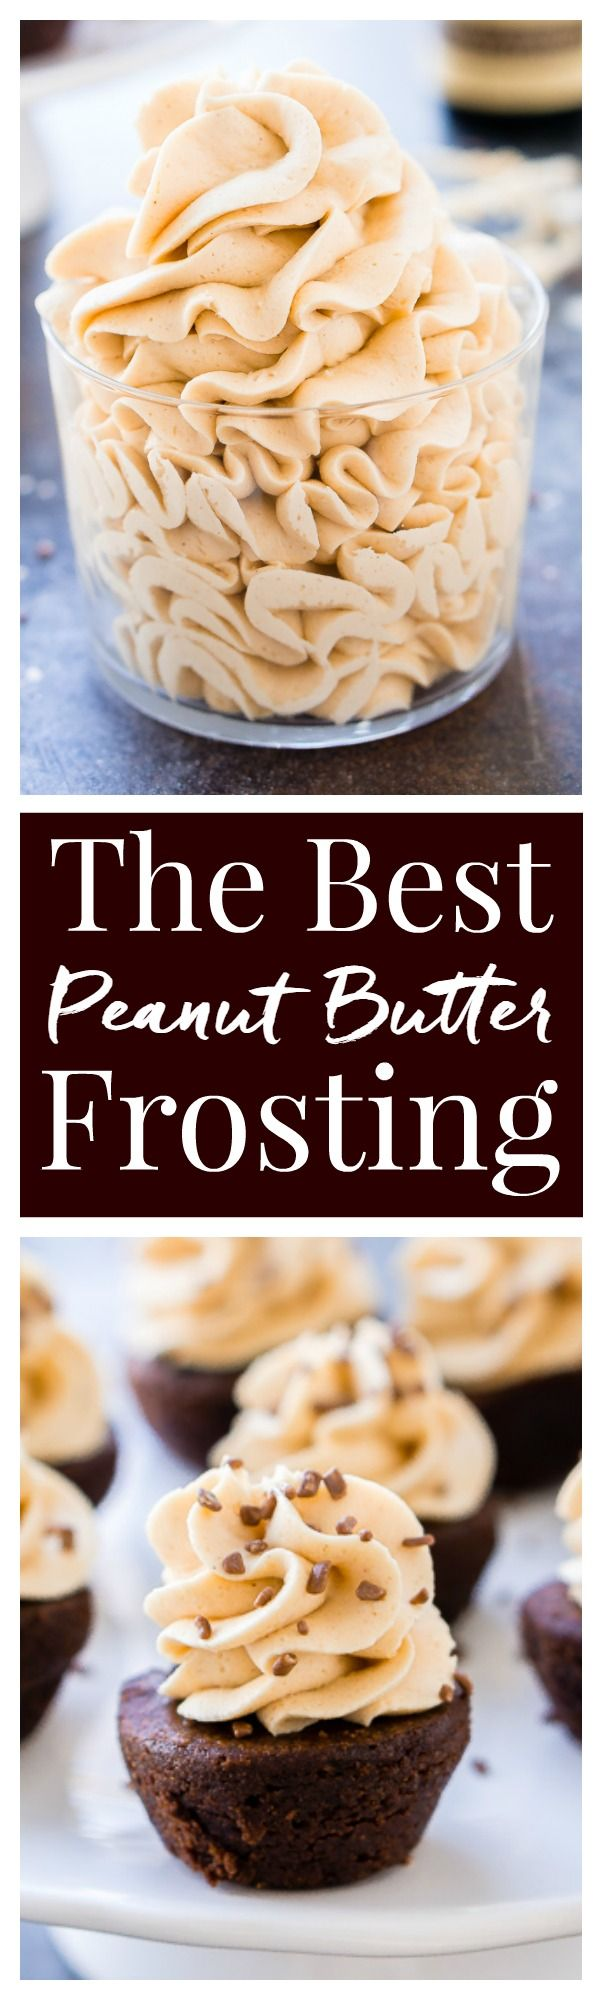 This is The Best Peanut Butter Frosting Recipe you're going to find. It's sweet, creamy, peanut buttery PERFECTION! Put it on cake, sandwich it between cookies, or lick it right off the beaters! via @sugarandsoulco